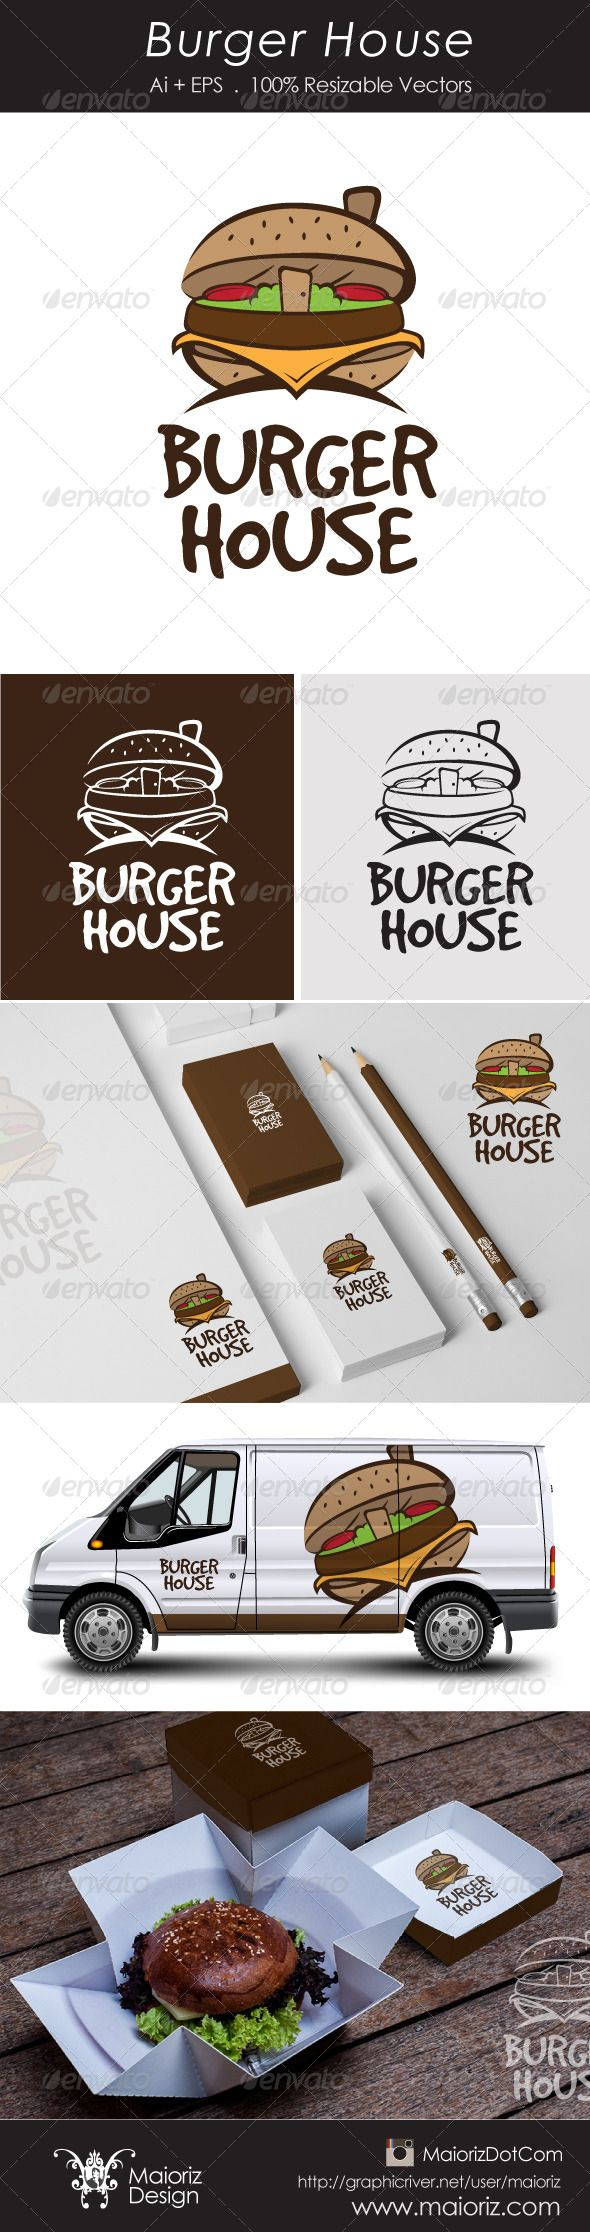 Burger House Logotype #GraphicRiver File Description This is custom logo template. Illustrator (AI), Vector (EPS) logo files included in this download. You can customize to your own branding. All colors and text can be modified. FEATURES The Logo Is 100% Vector. 100% Customizable. Fully Layered Logo Template. CMYK. High Quality. AI, EPS 8/10. Not Include Mockups identity, Burger or truck. Font Used: GoodDog .fontsquirrel /fonts/GoodDog Created: 6November13 GraphicsFilesIncluded…